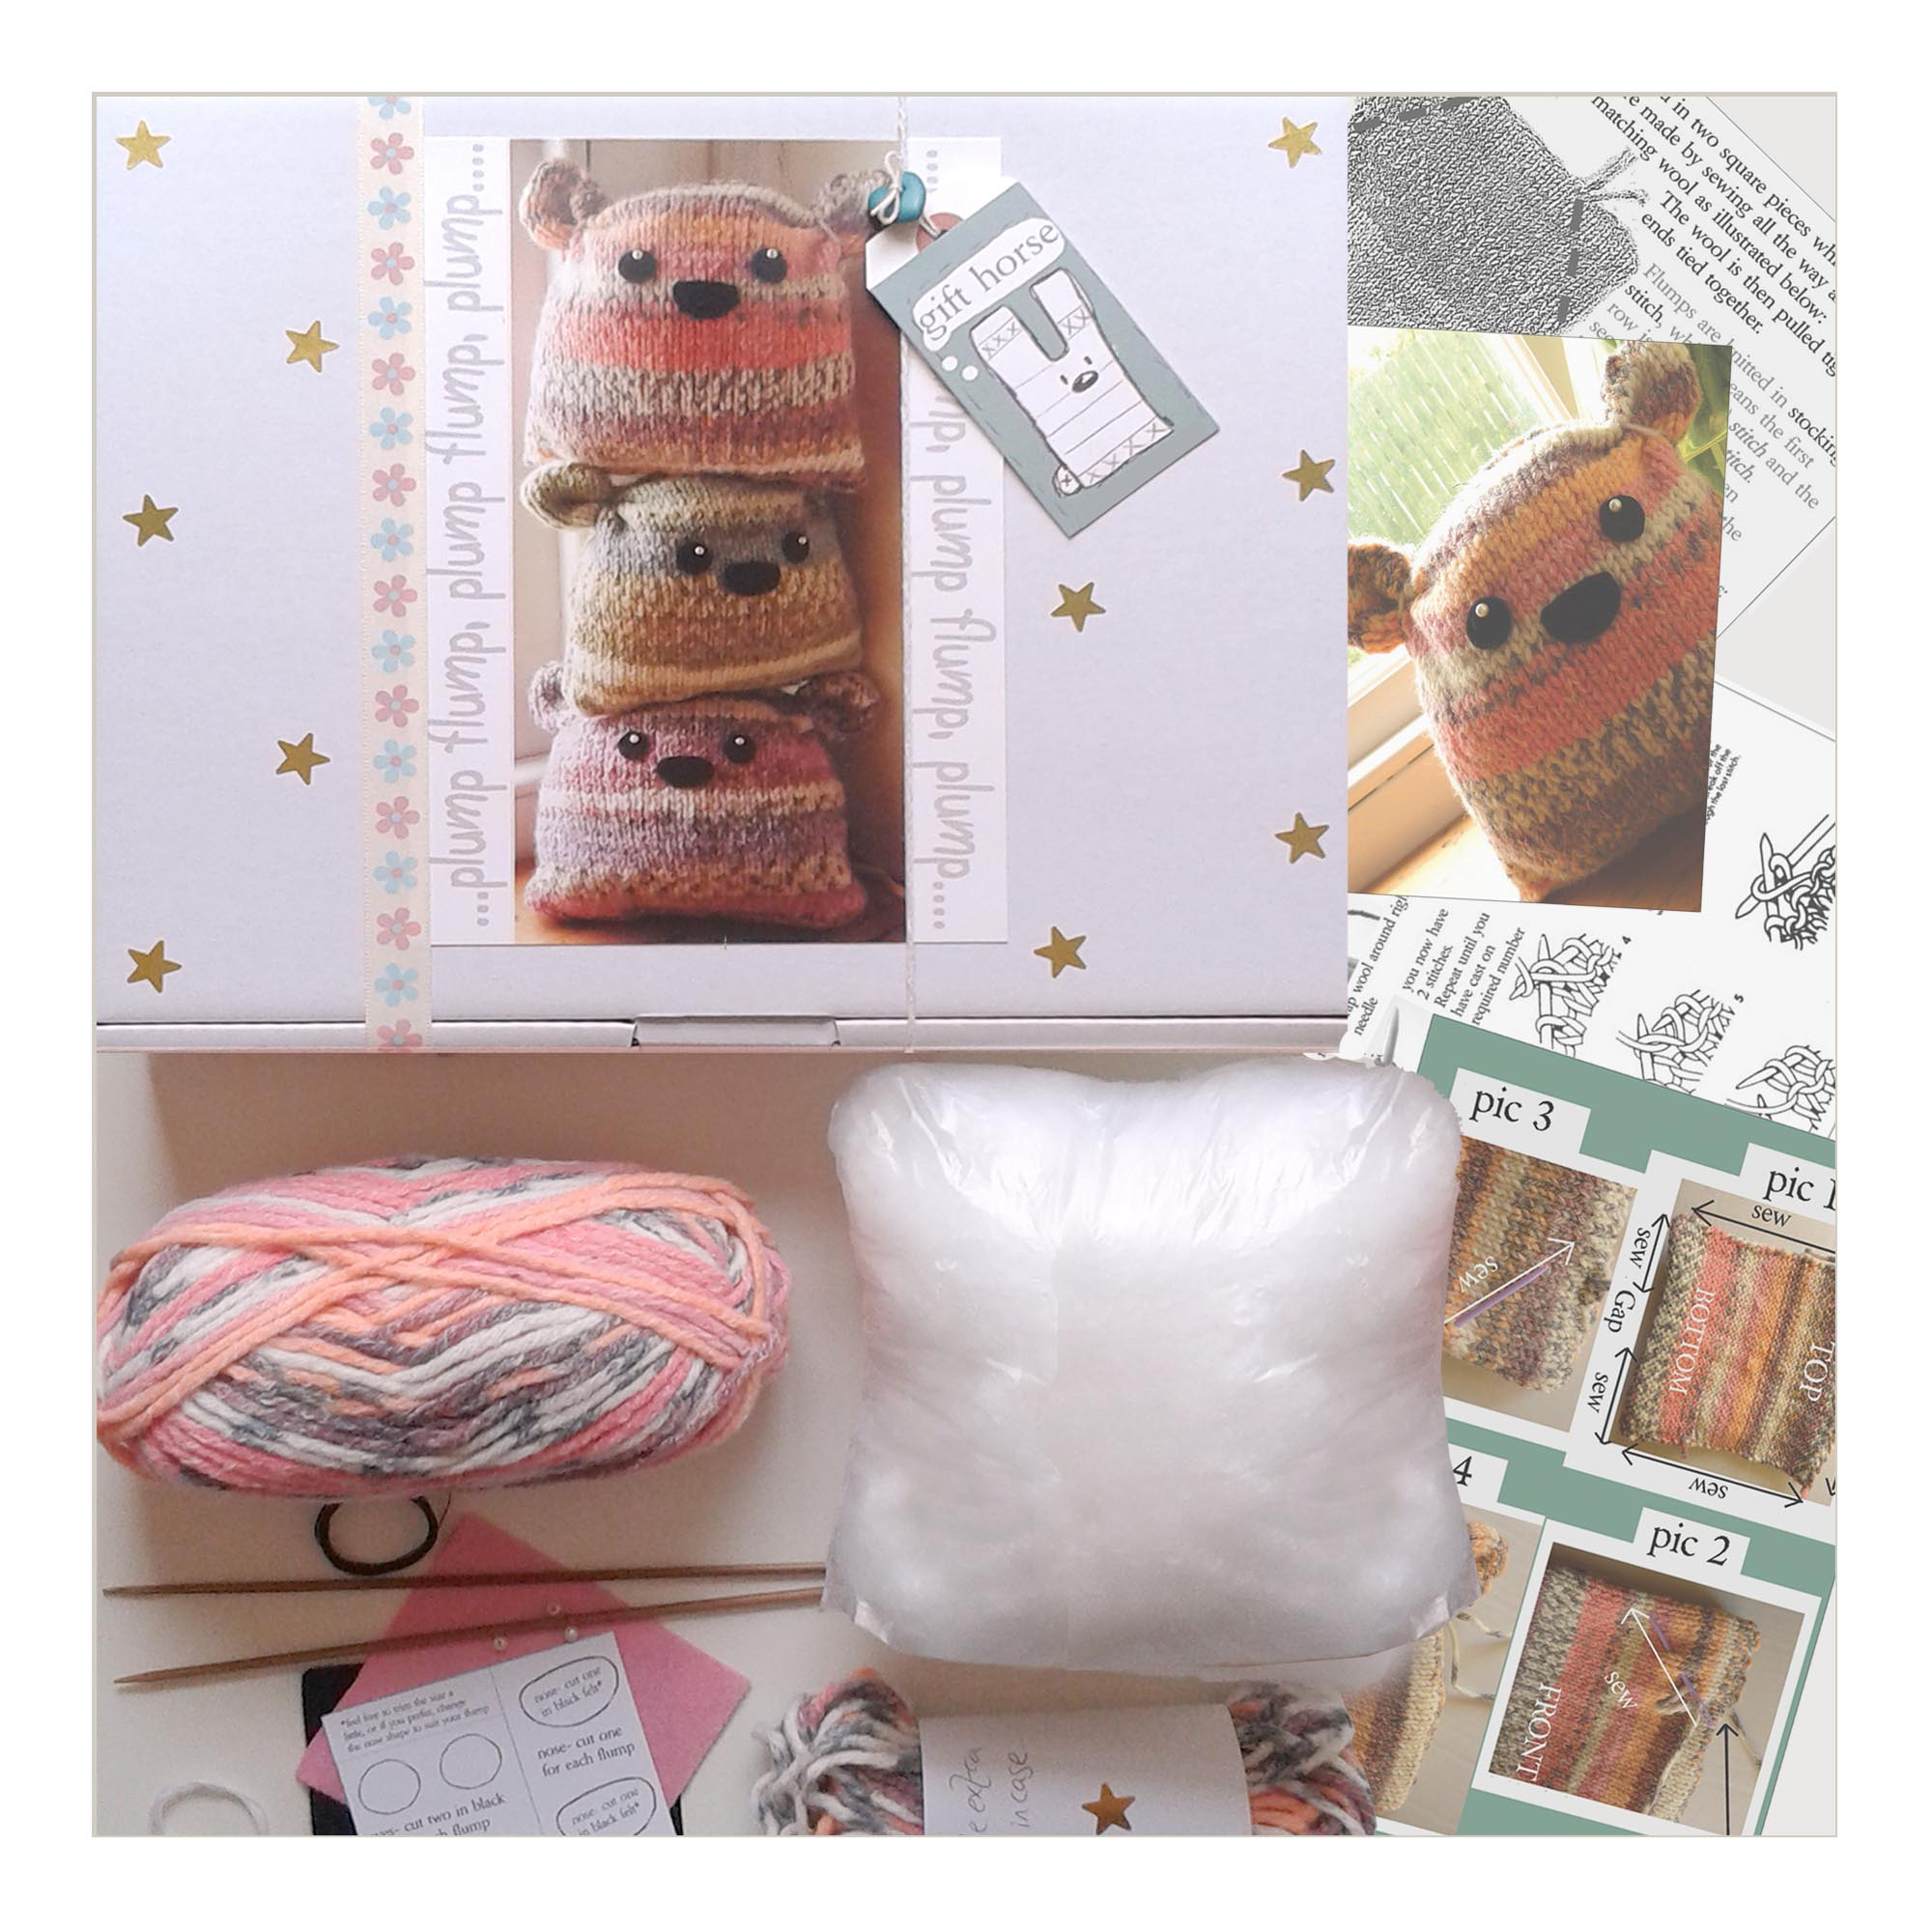 plump-flump-knitting-kit-contents.jpg